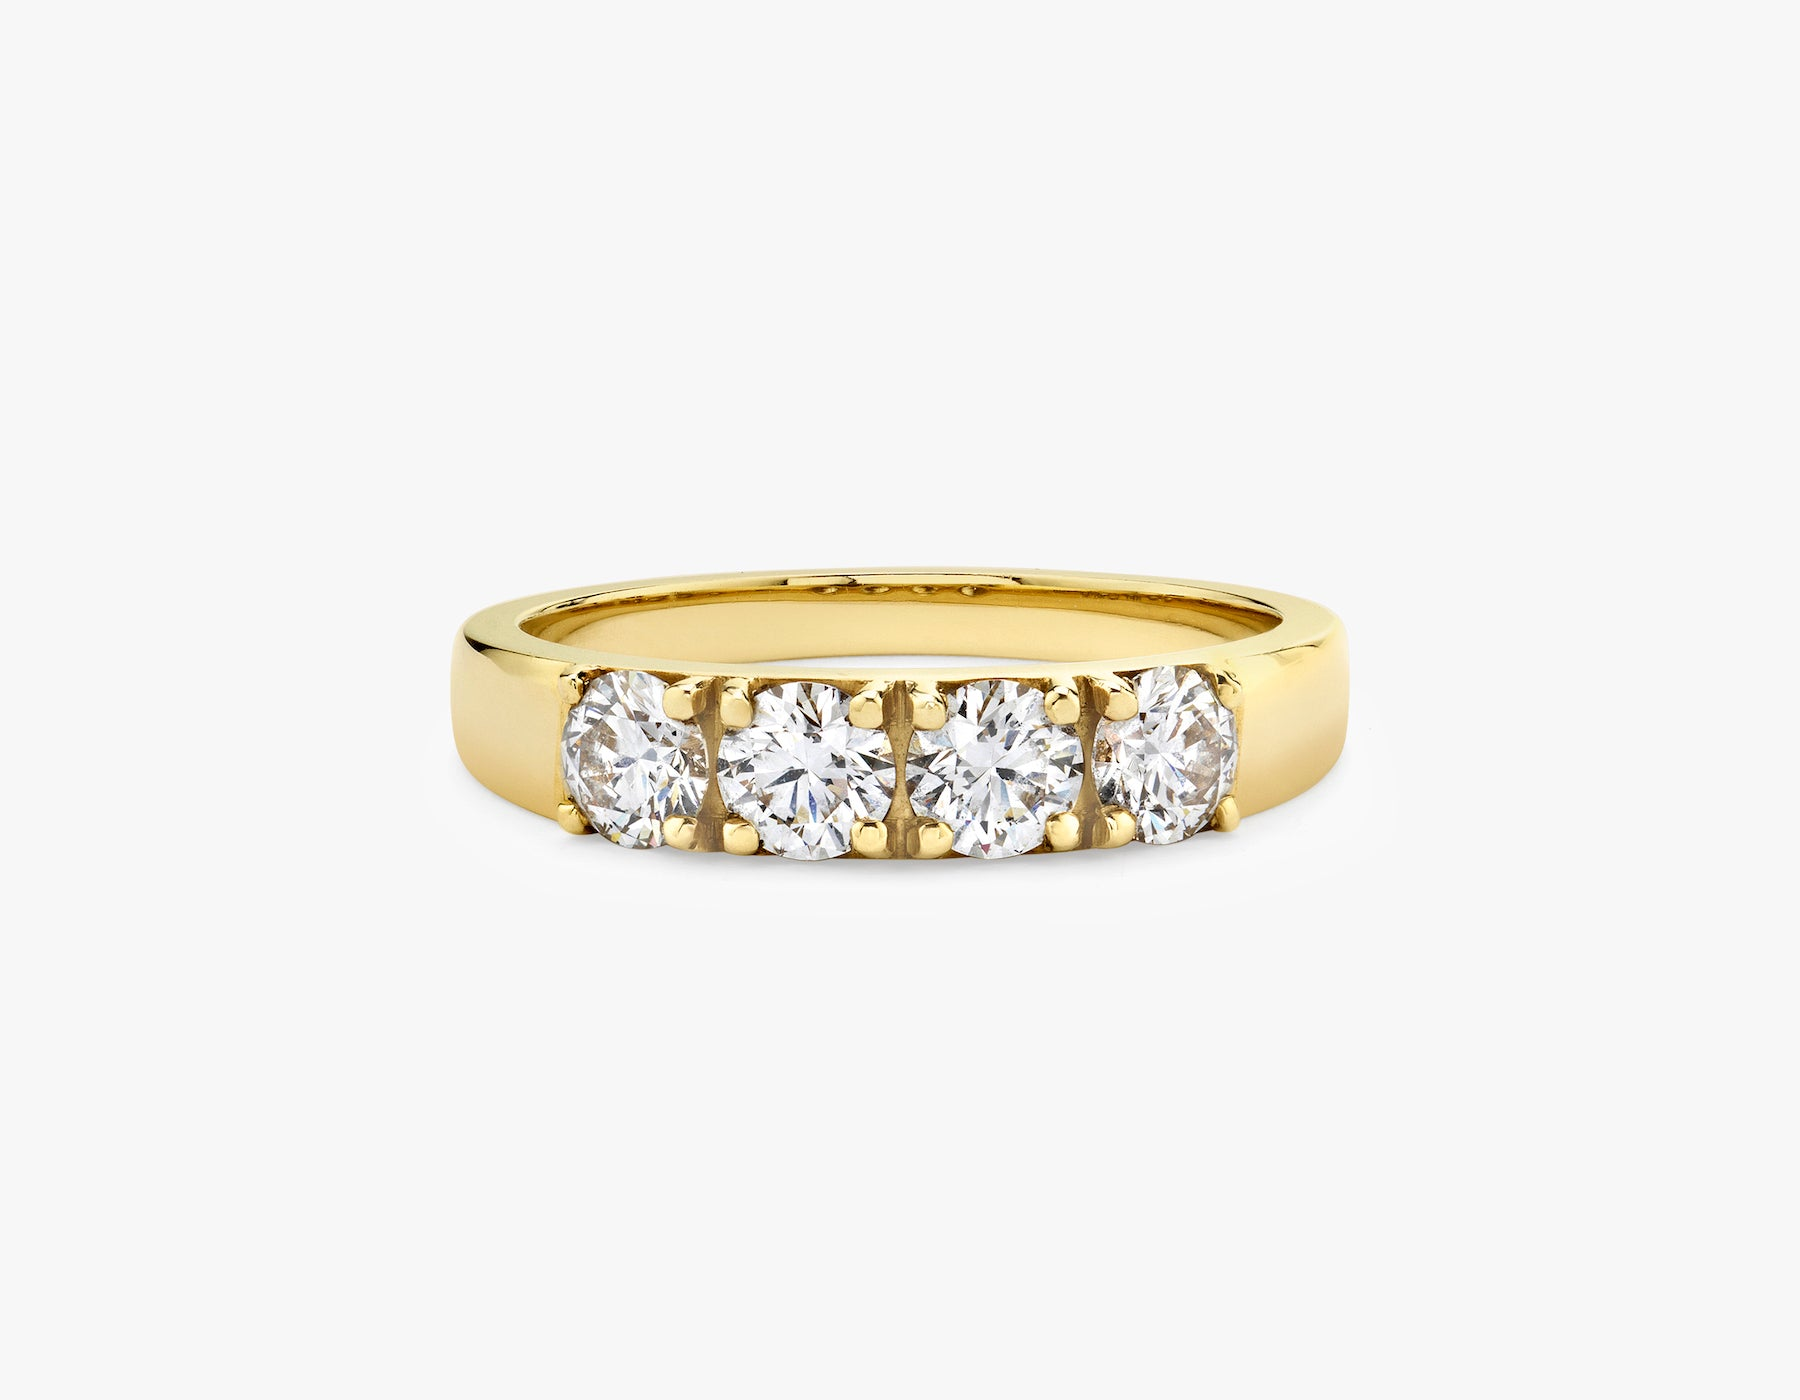 Vrai simple minimalist Round Diamond Tetrad Band .25ct Round Brilliant Diamond Ring, 14K Yellow Gold